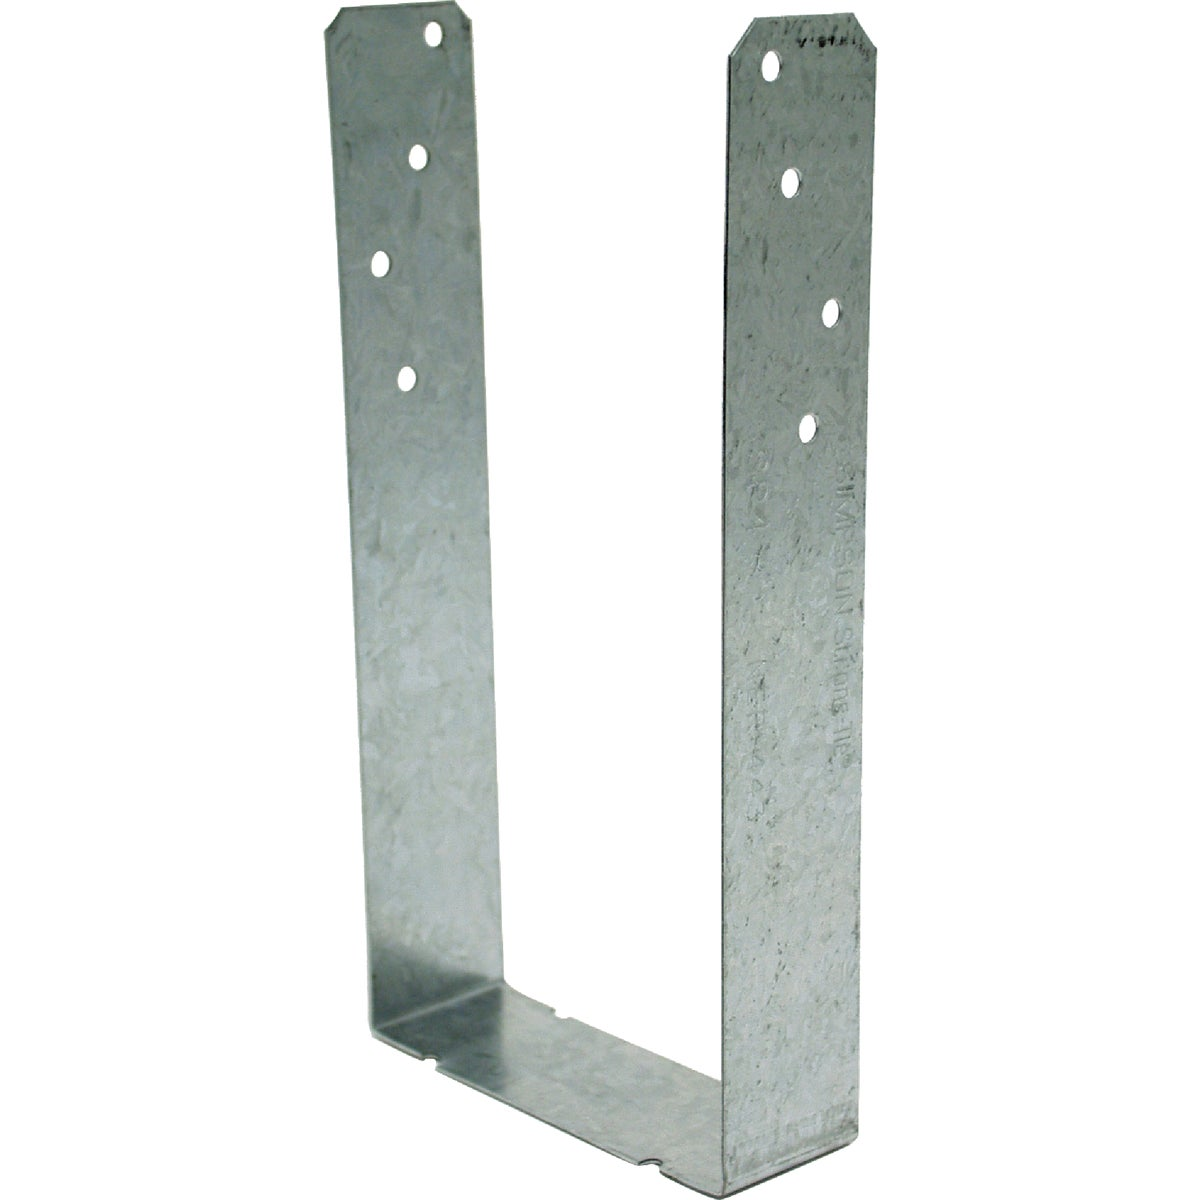 STUD PLATE - SP4 by Simpson Strong Tie